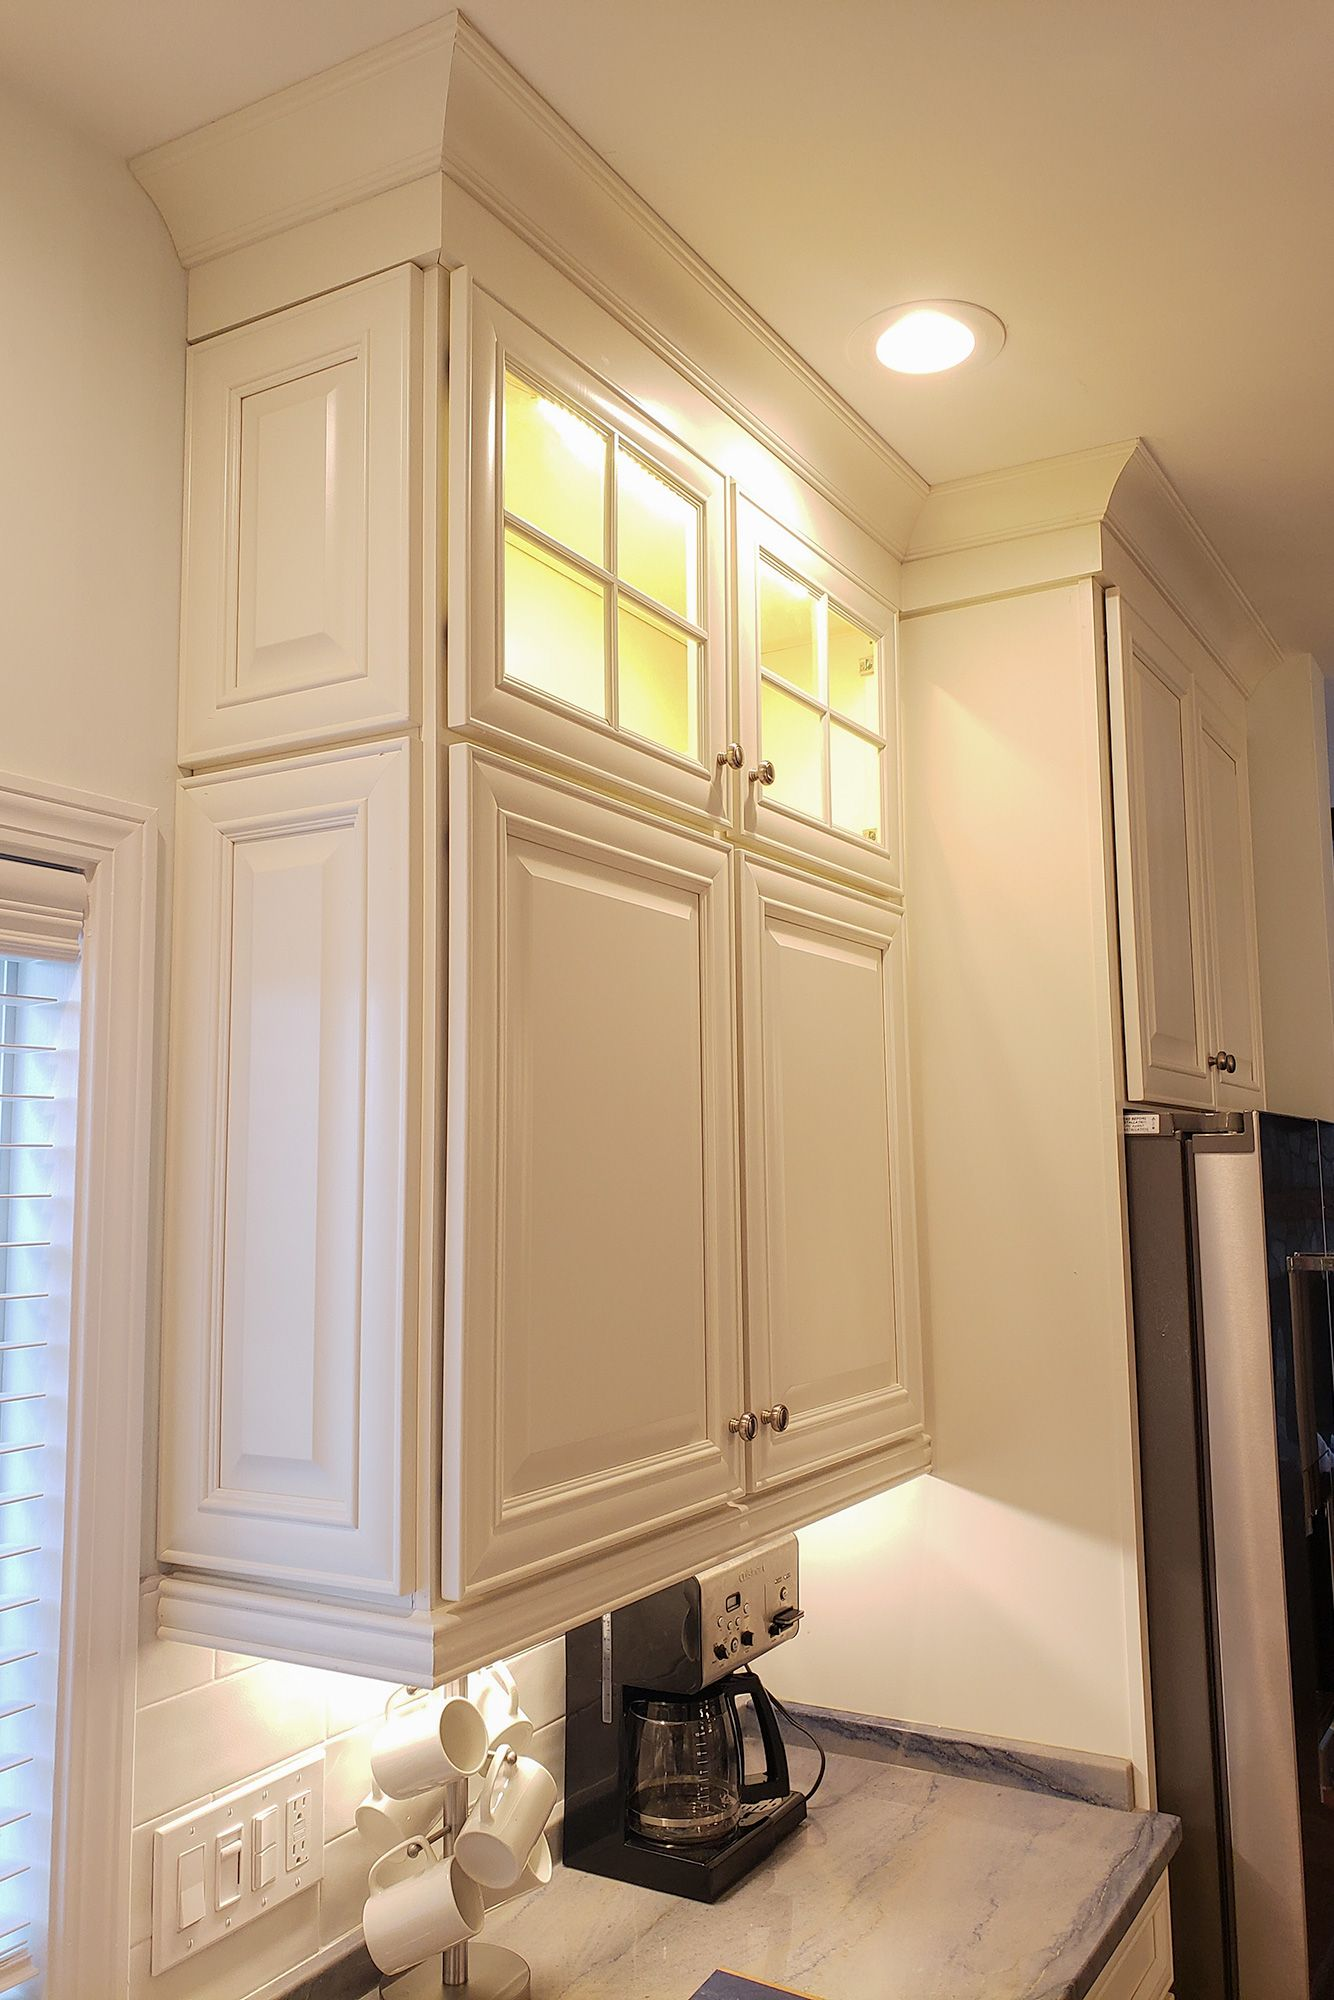 Wall Decorative Doors Finish Off The Ends Of This Stacked Cabinet Online Kitchen Cabinets Cabinet Cabinets Online